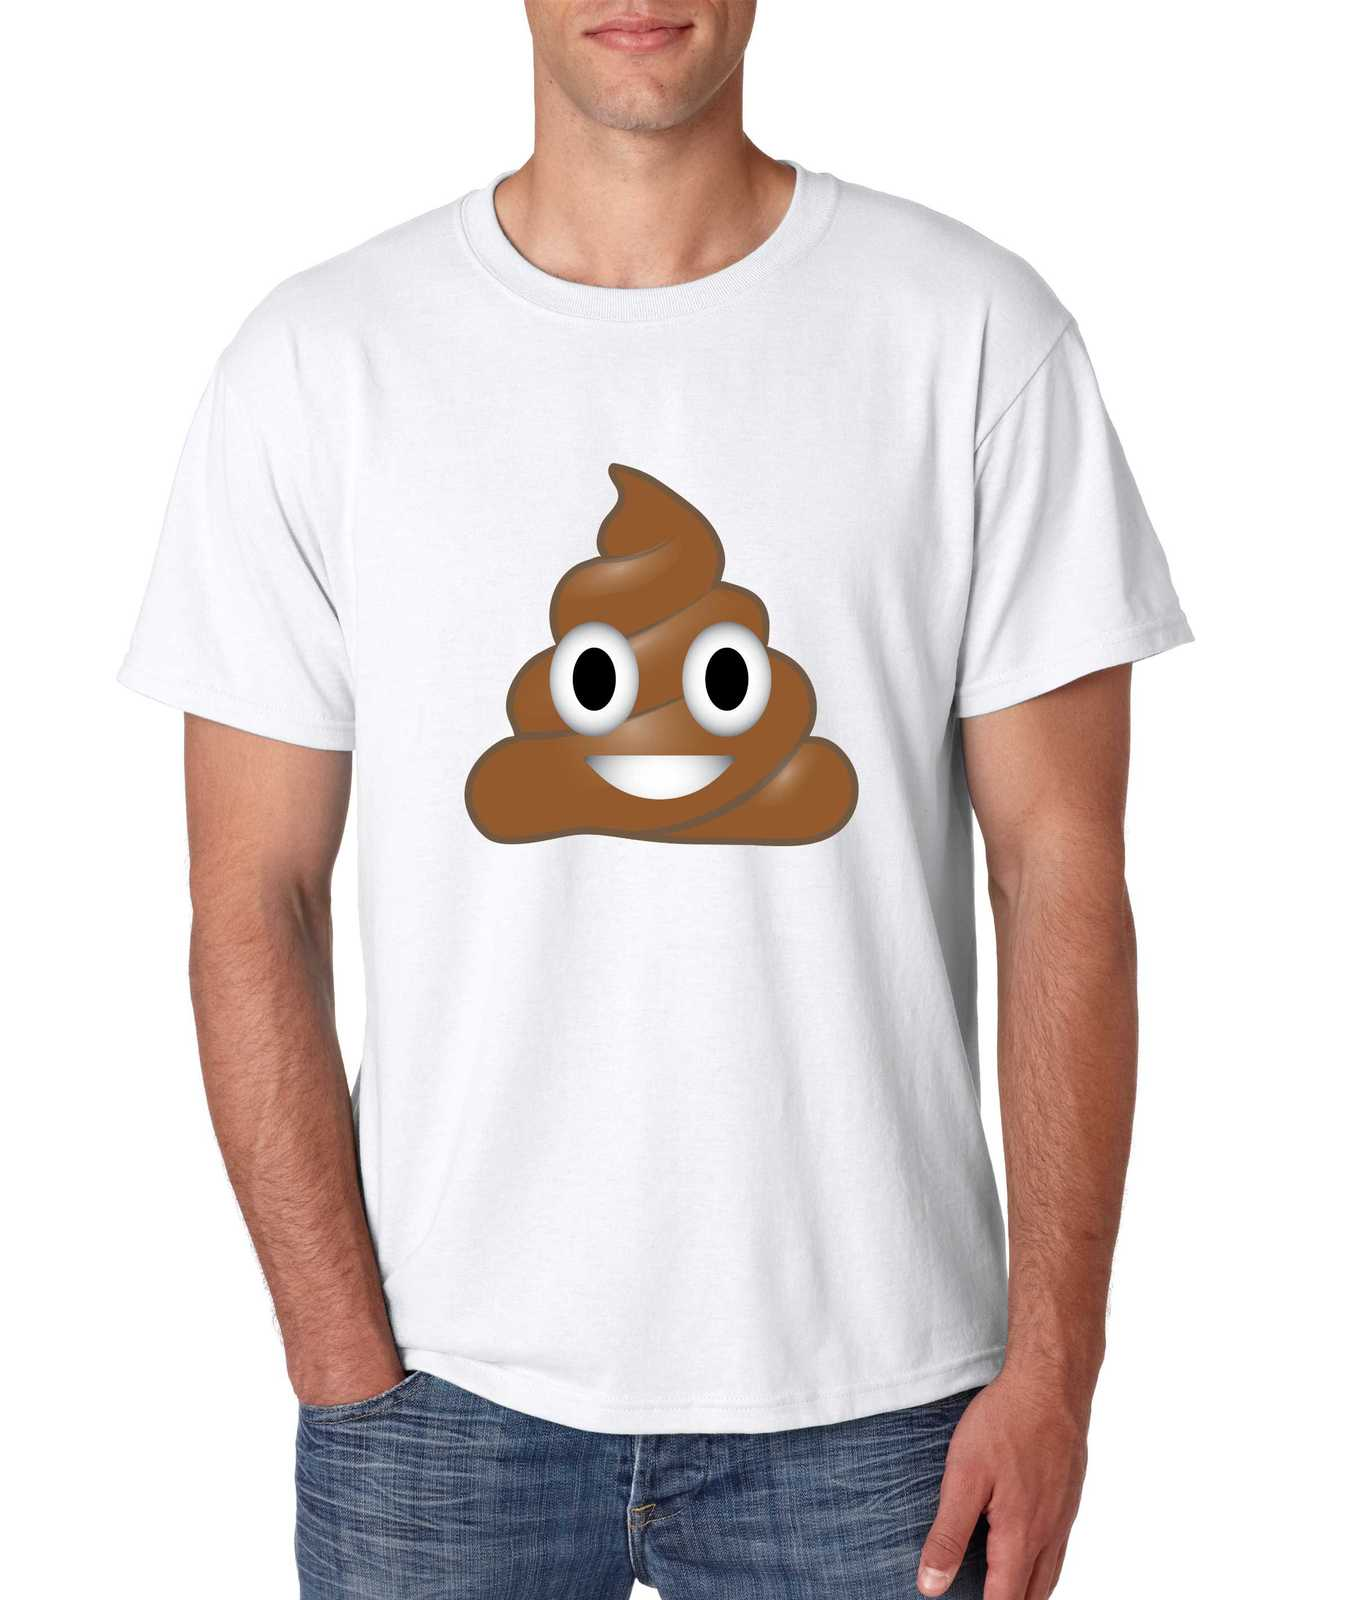 men 39 s tee shirt poop emoji t shirts tank tops. Black Bedroom Furniture Sets. Home Design Ideas